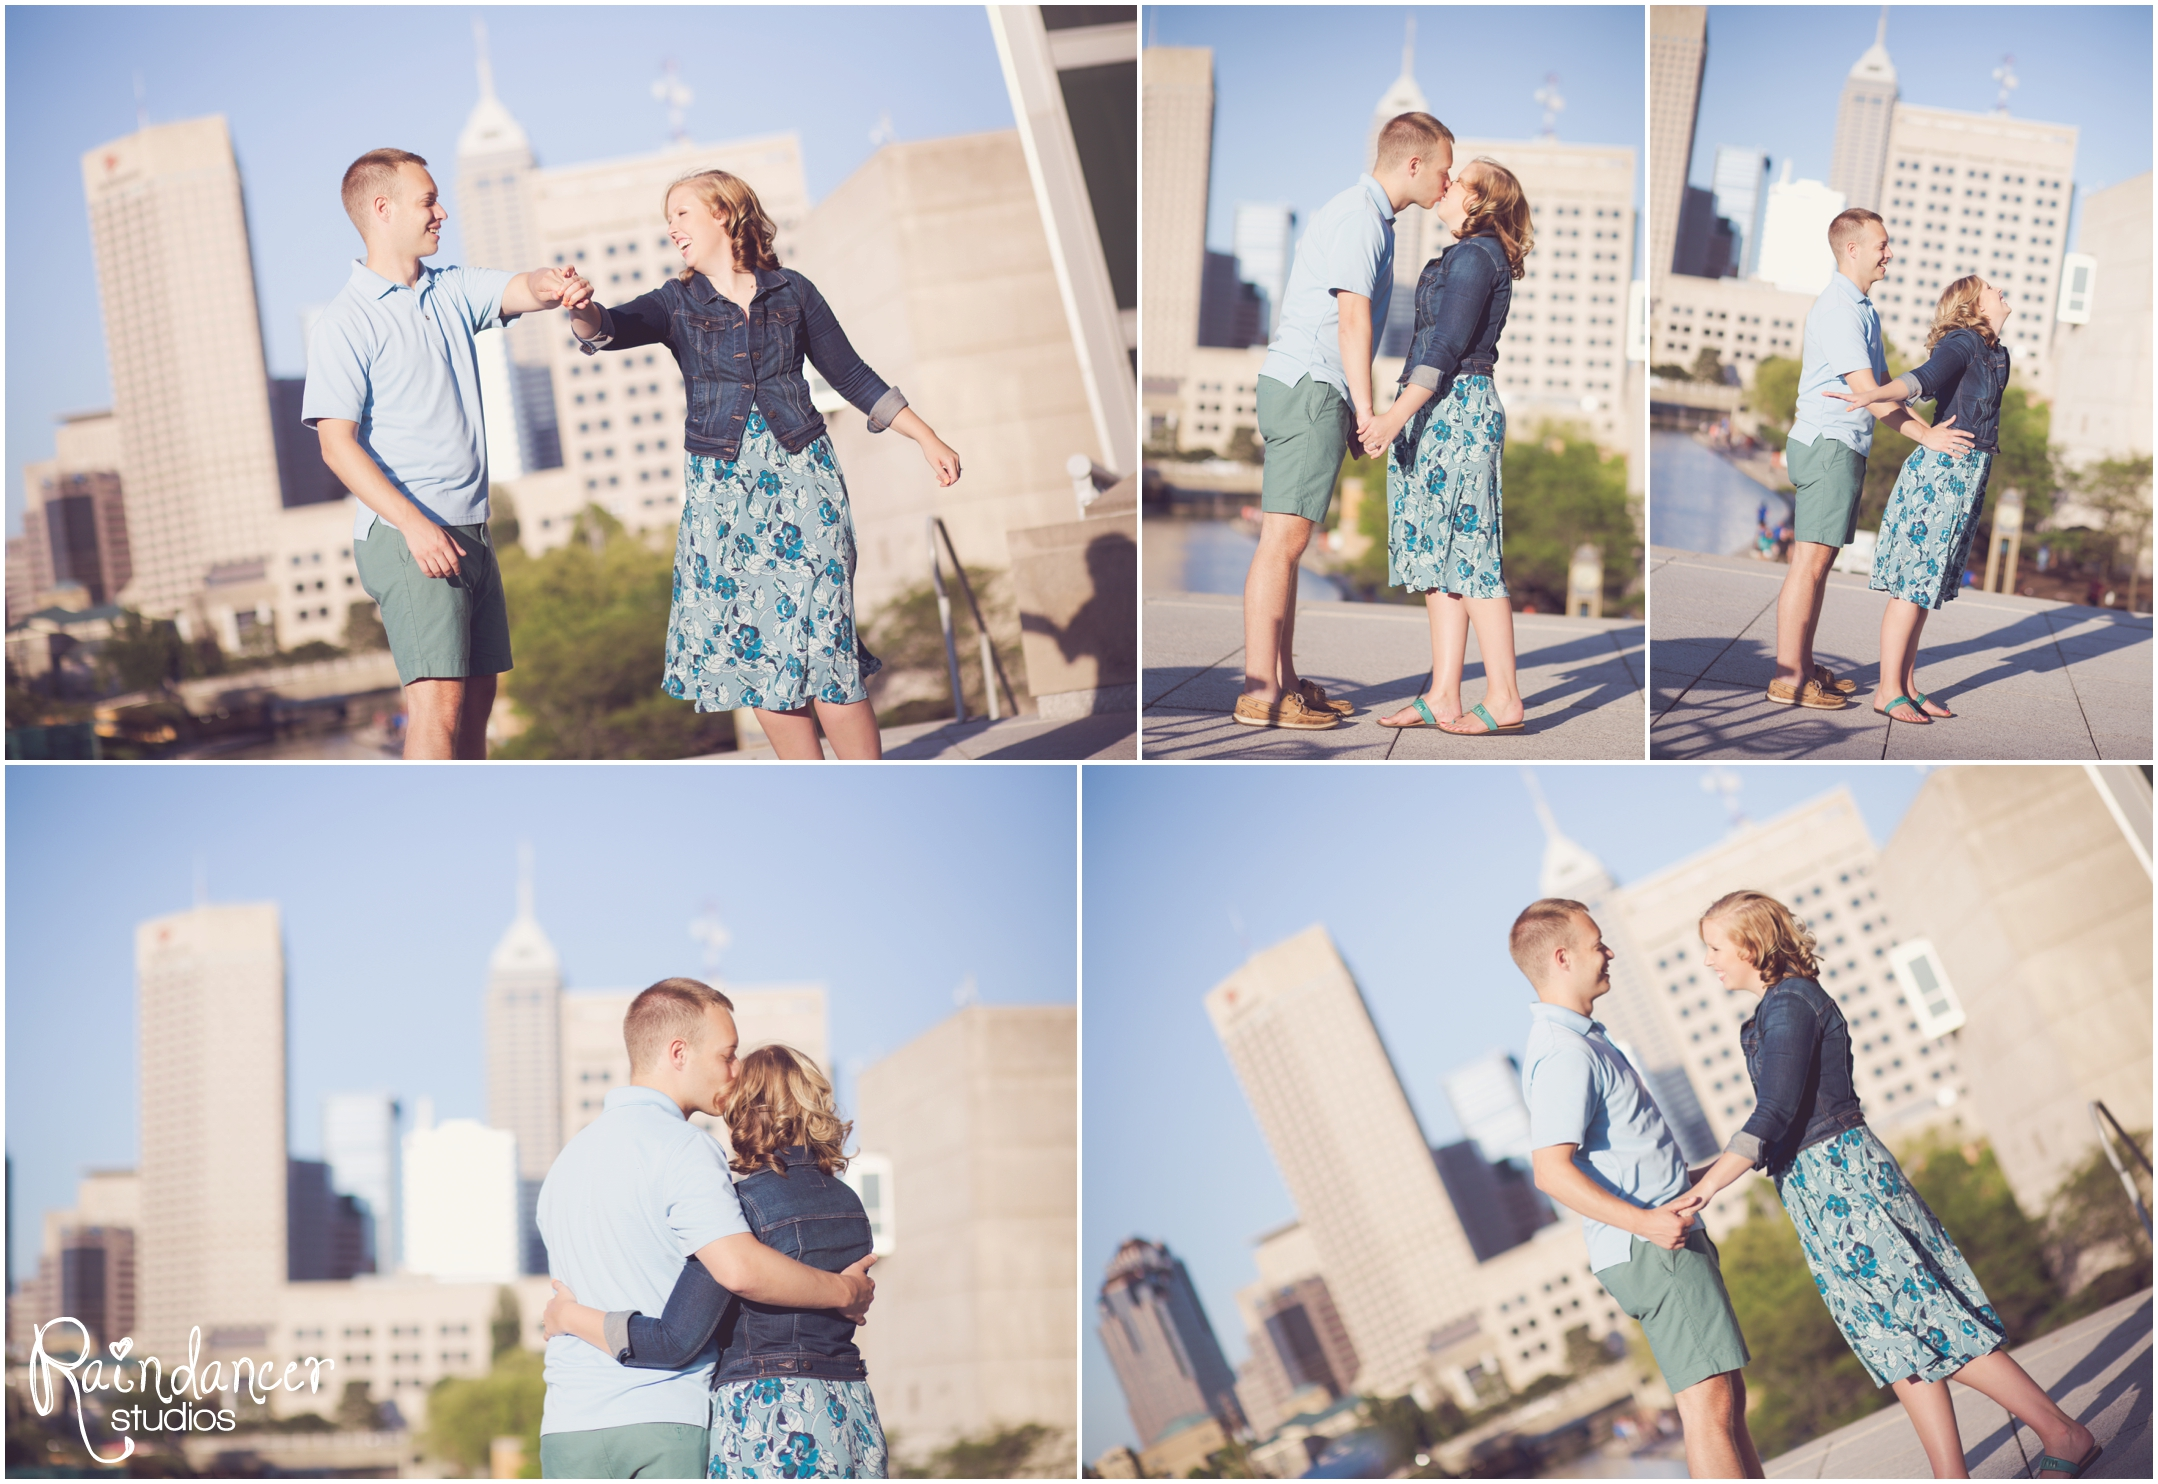 Indianapolis engagement photographer, Indy engagement photographer, Indy engagement photography, Indianapolis engagement photography, Indianapolis wedding photographer, Indianapolis wedding photography